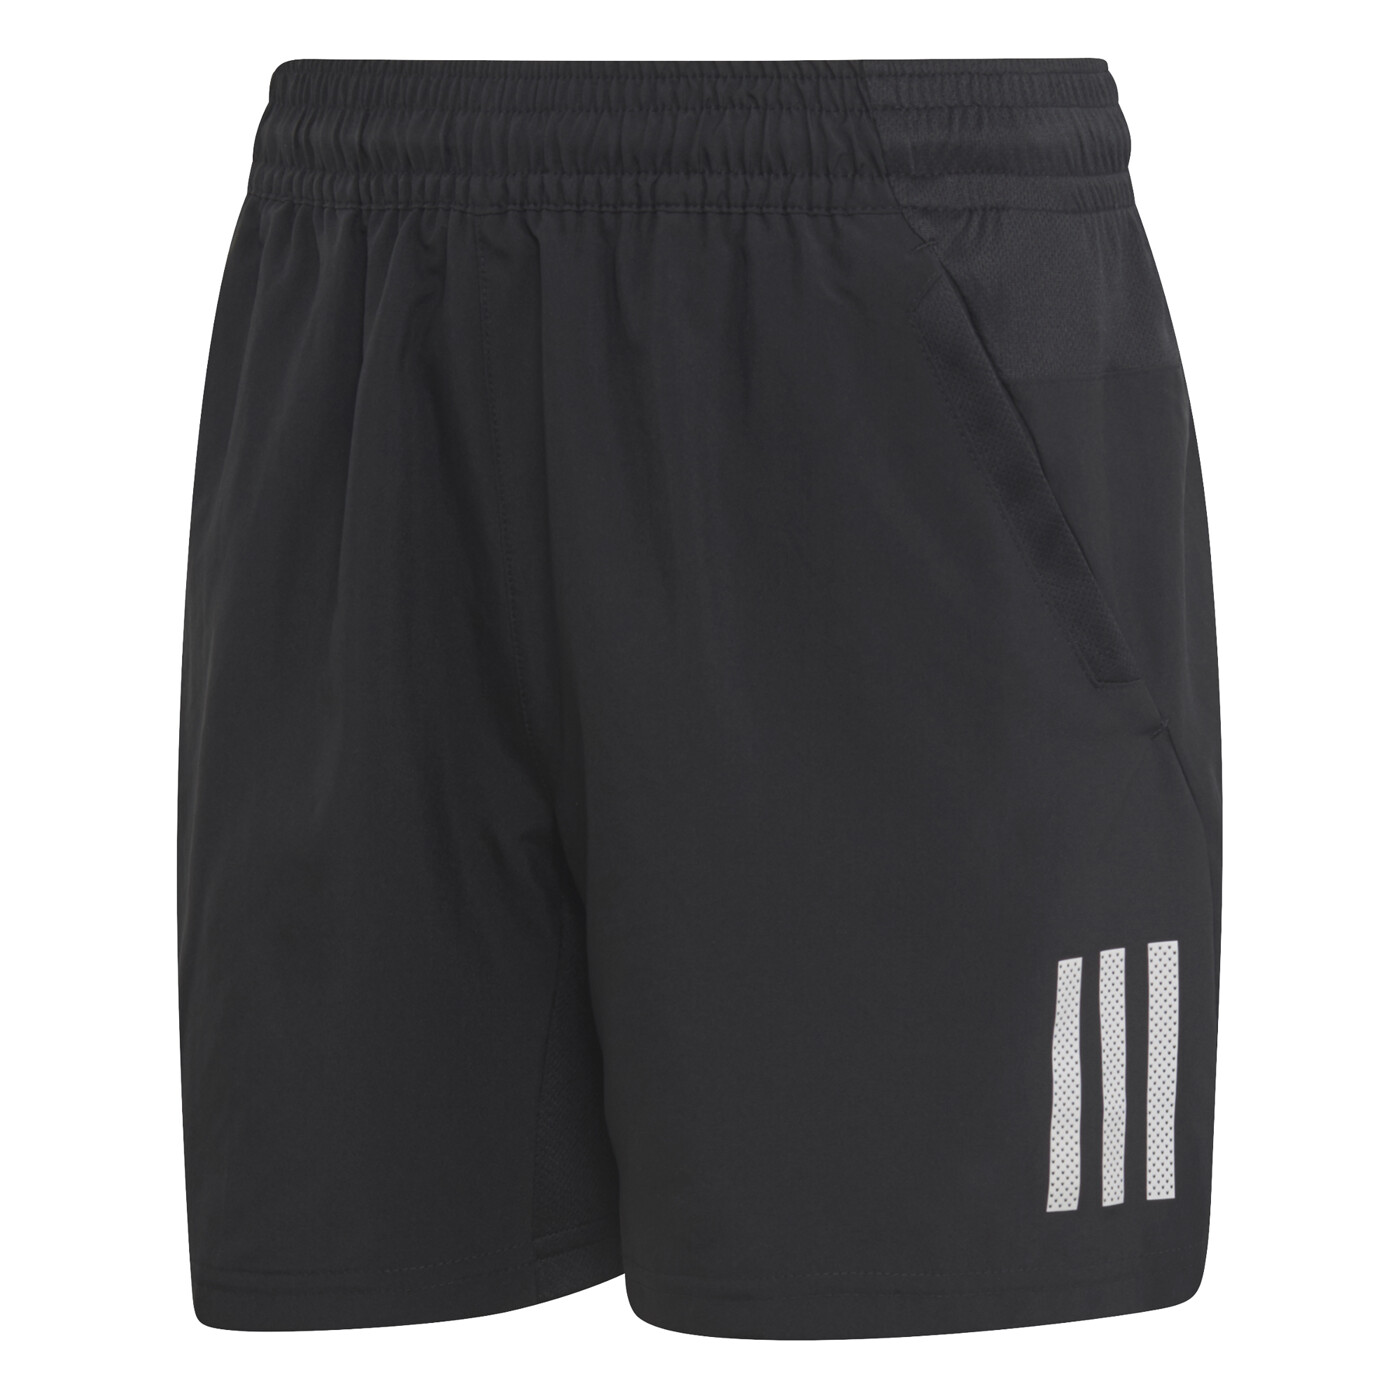 ADIDAS B CLUB 3S SHORT - Kinder